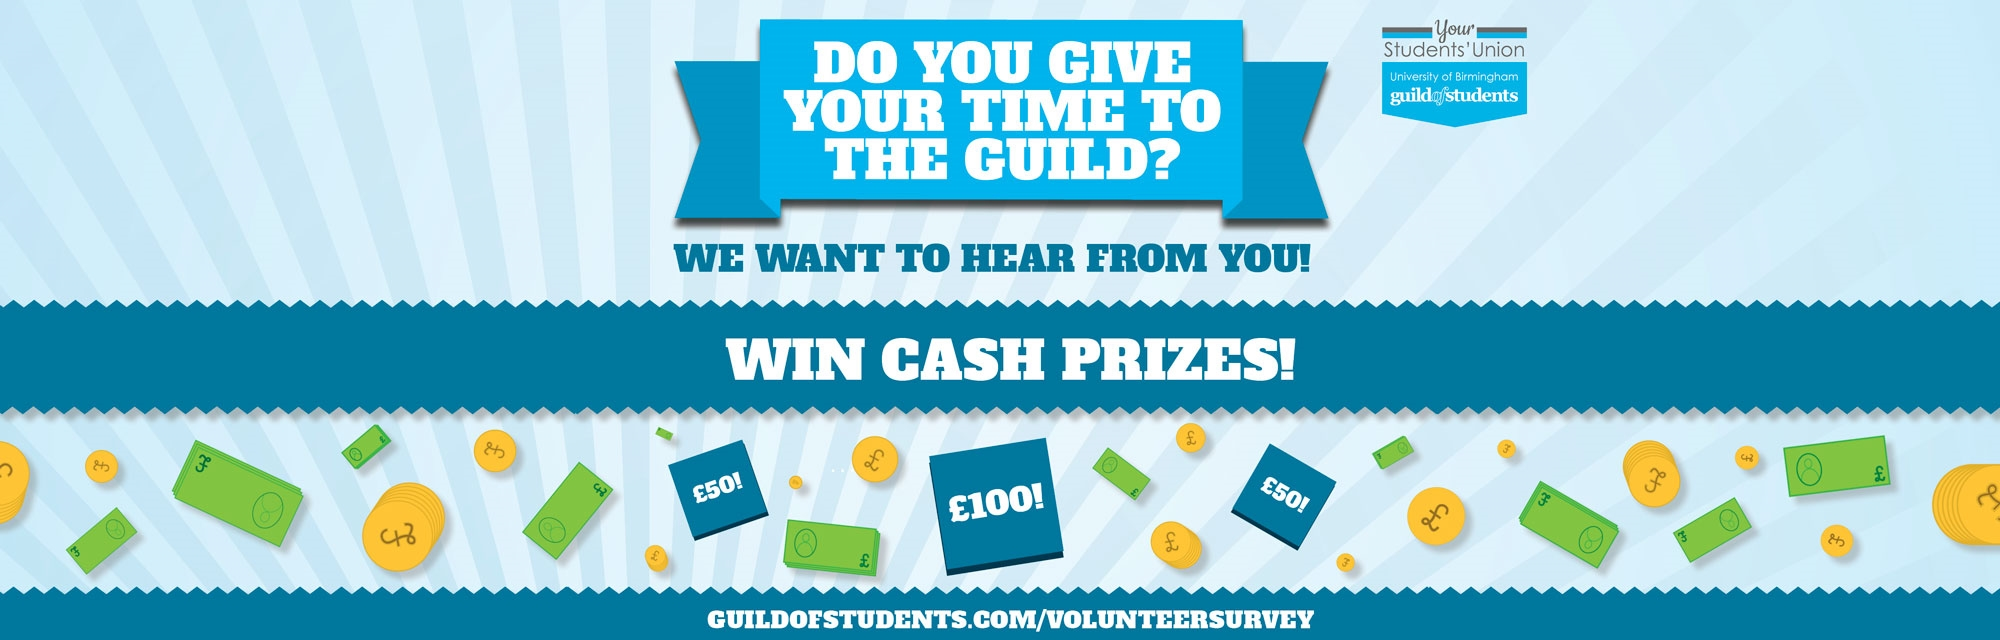 Do you give your time to the Guild?We want to hear from you! Click here for more information